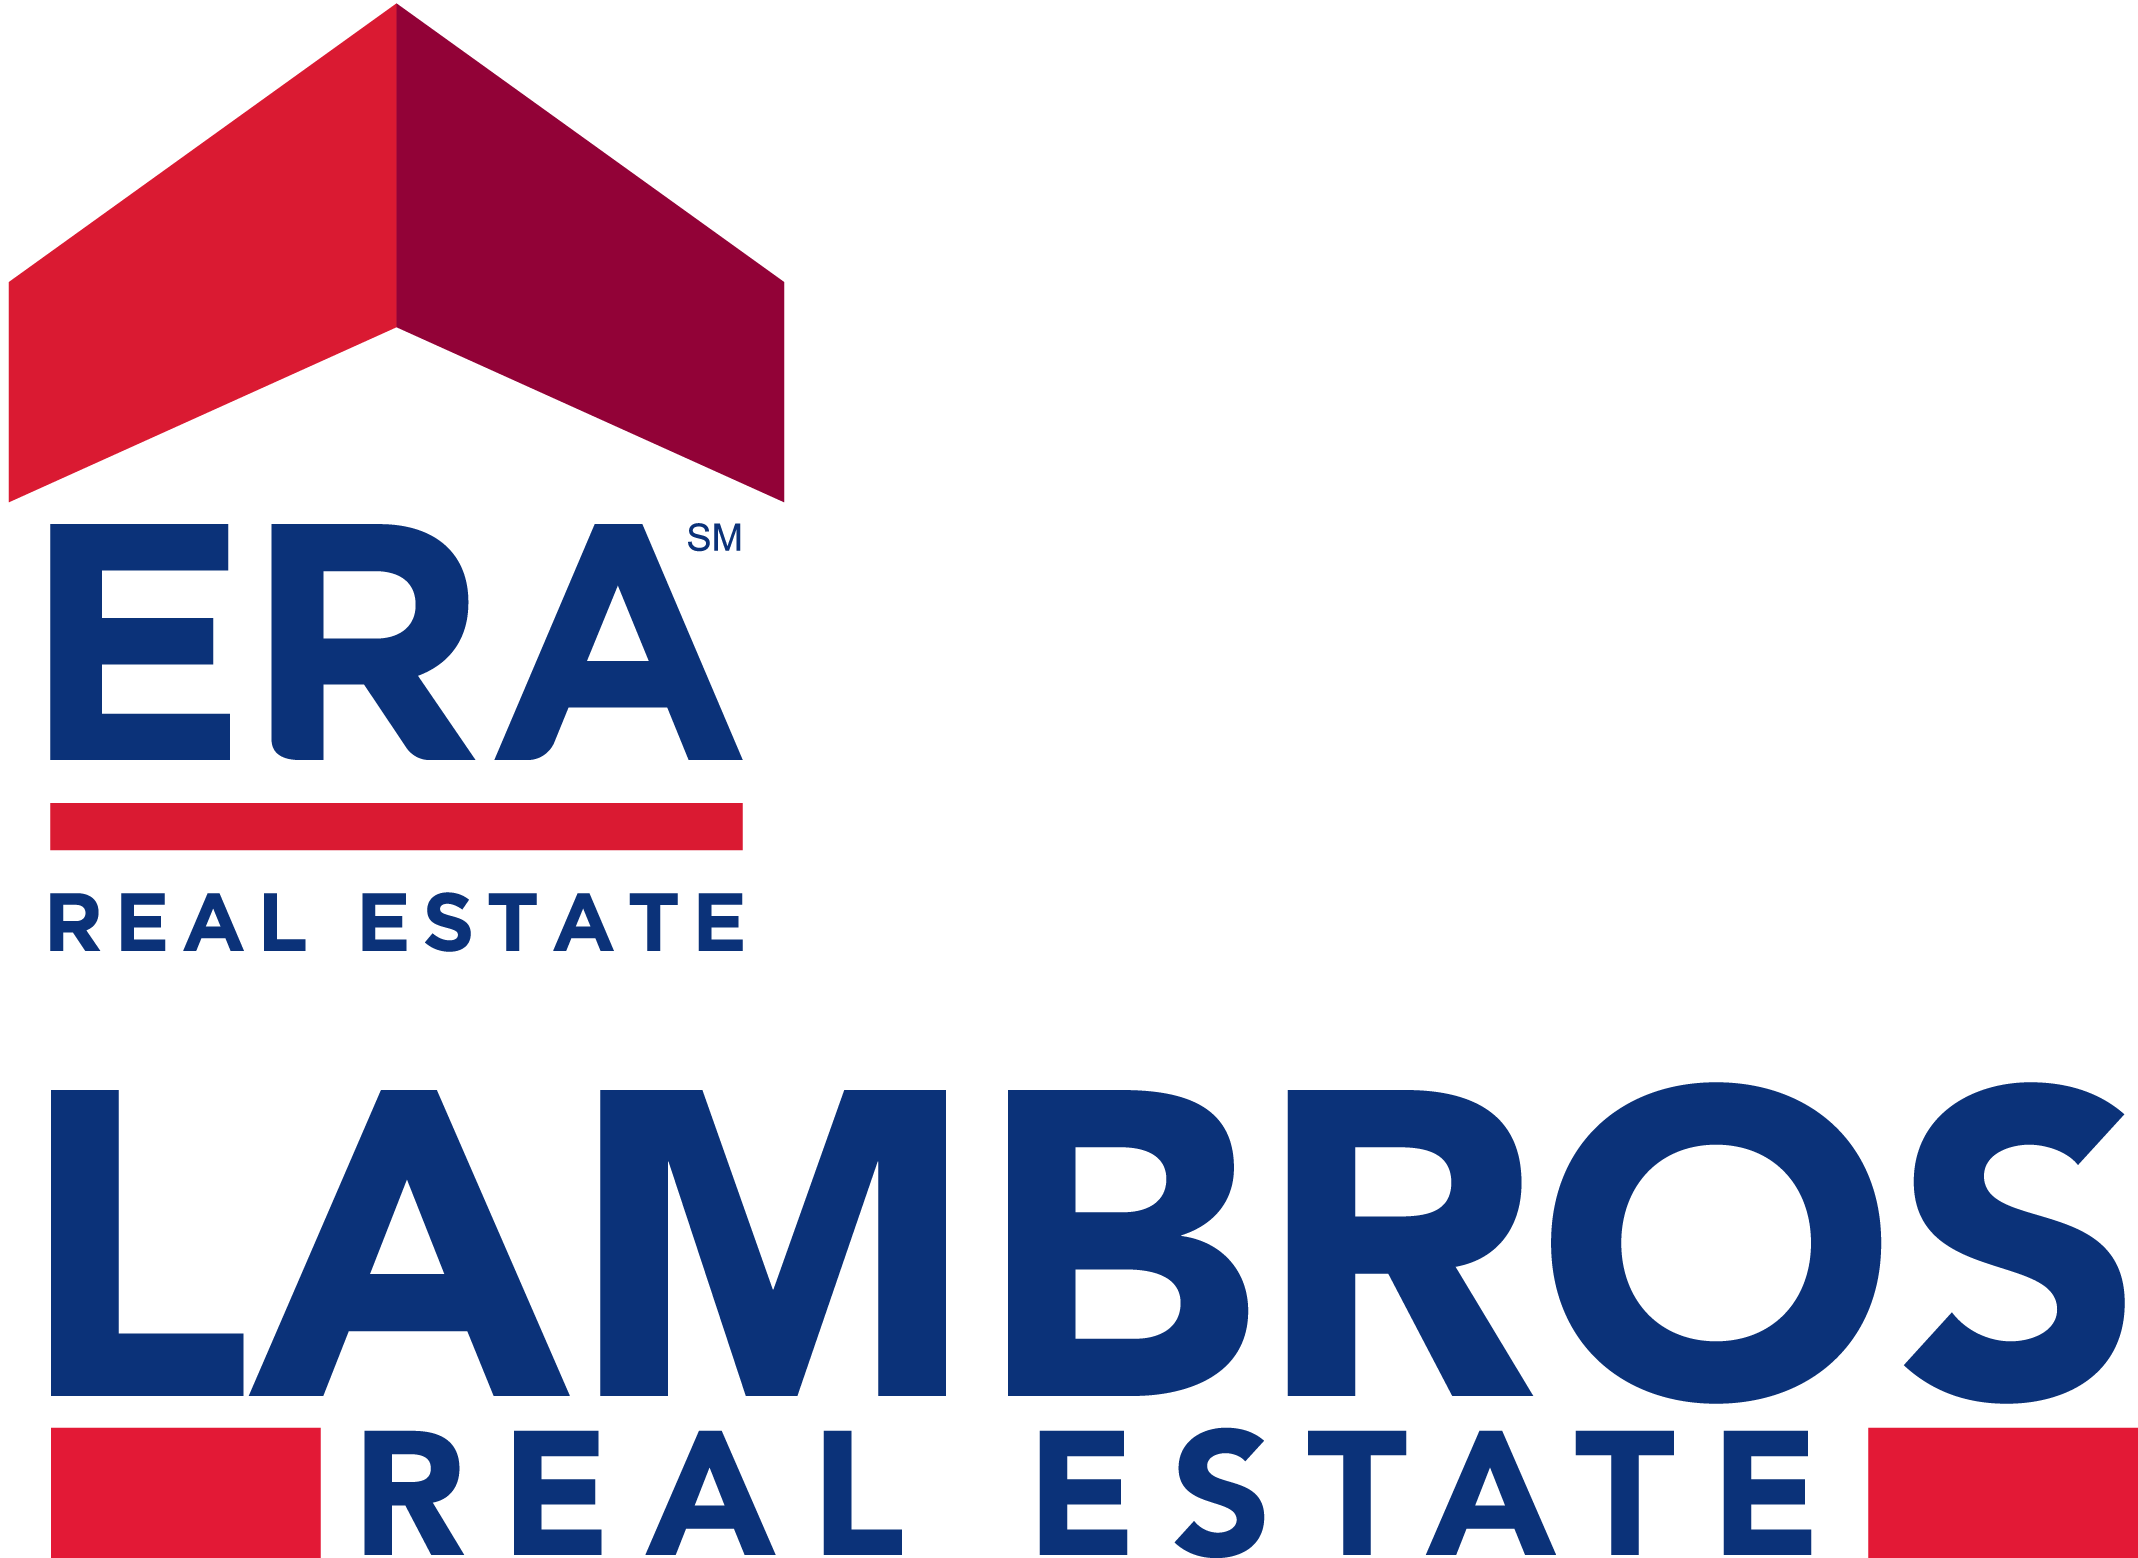 ERA Lambros Real Estate